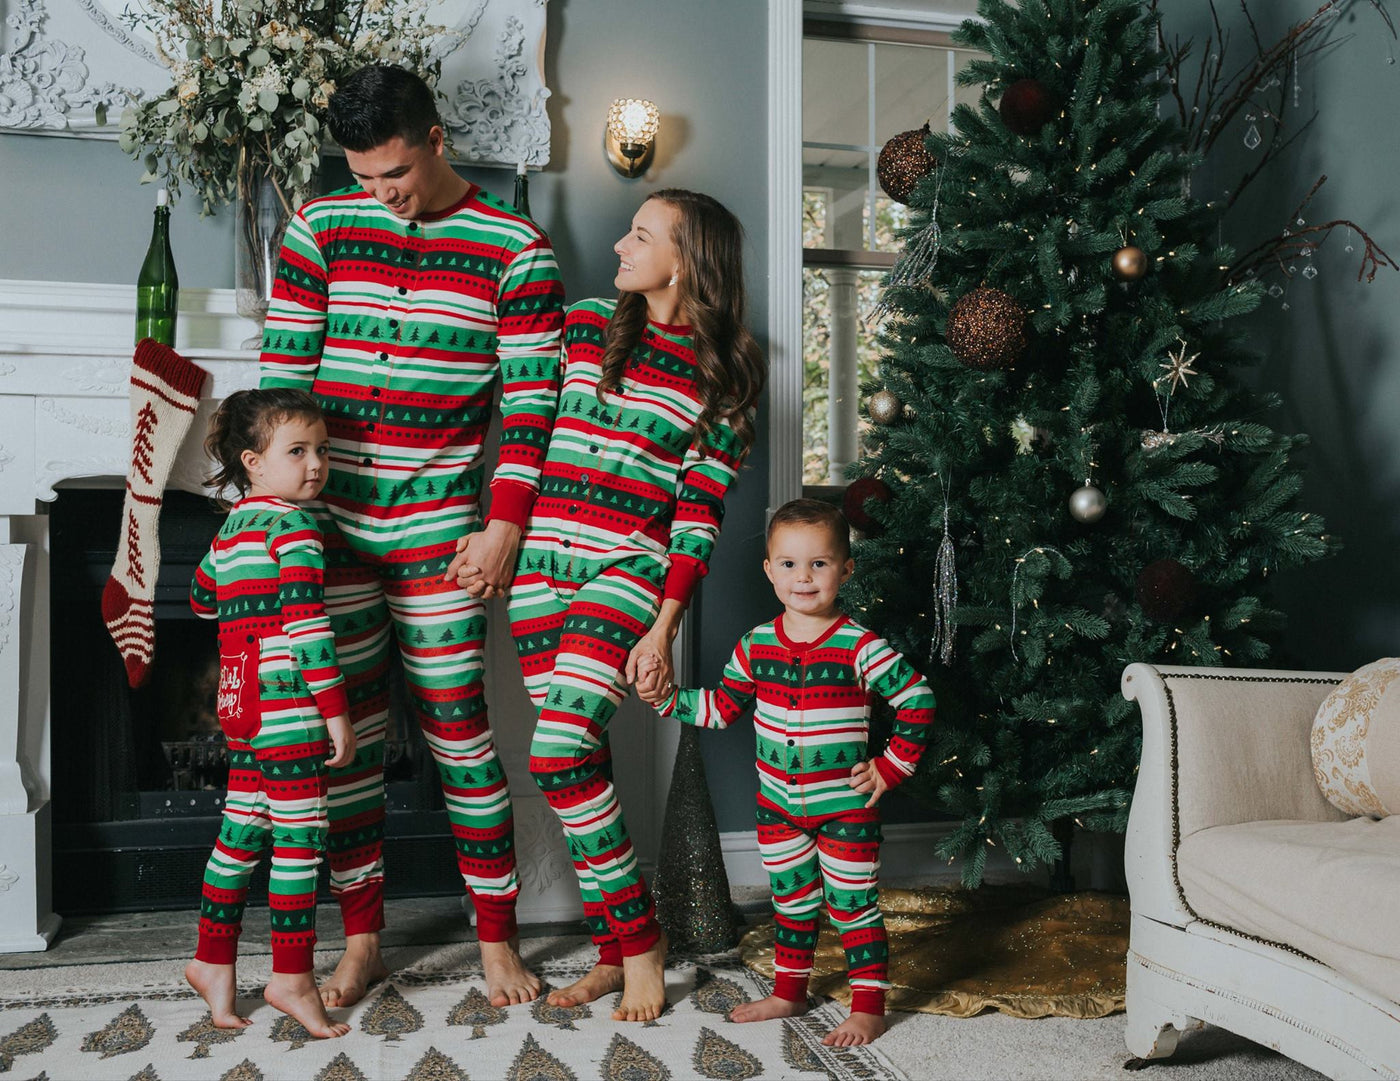 b05e043046 ... Lazy One Adult Special Delivery Flapjack Matching Christmas Pj s - Family  Matching Christmas Pajamas - Christmas ...